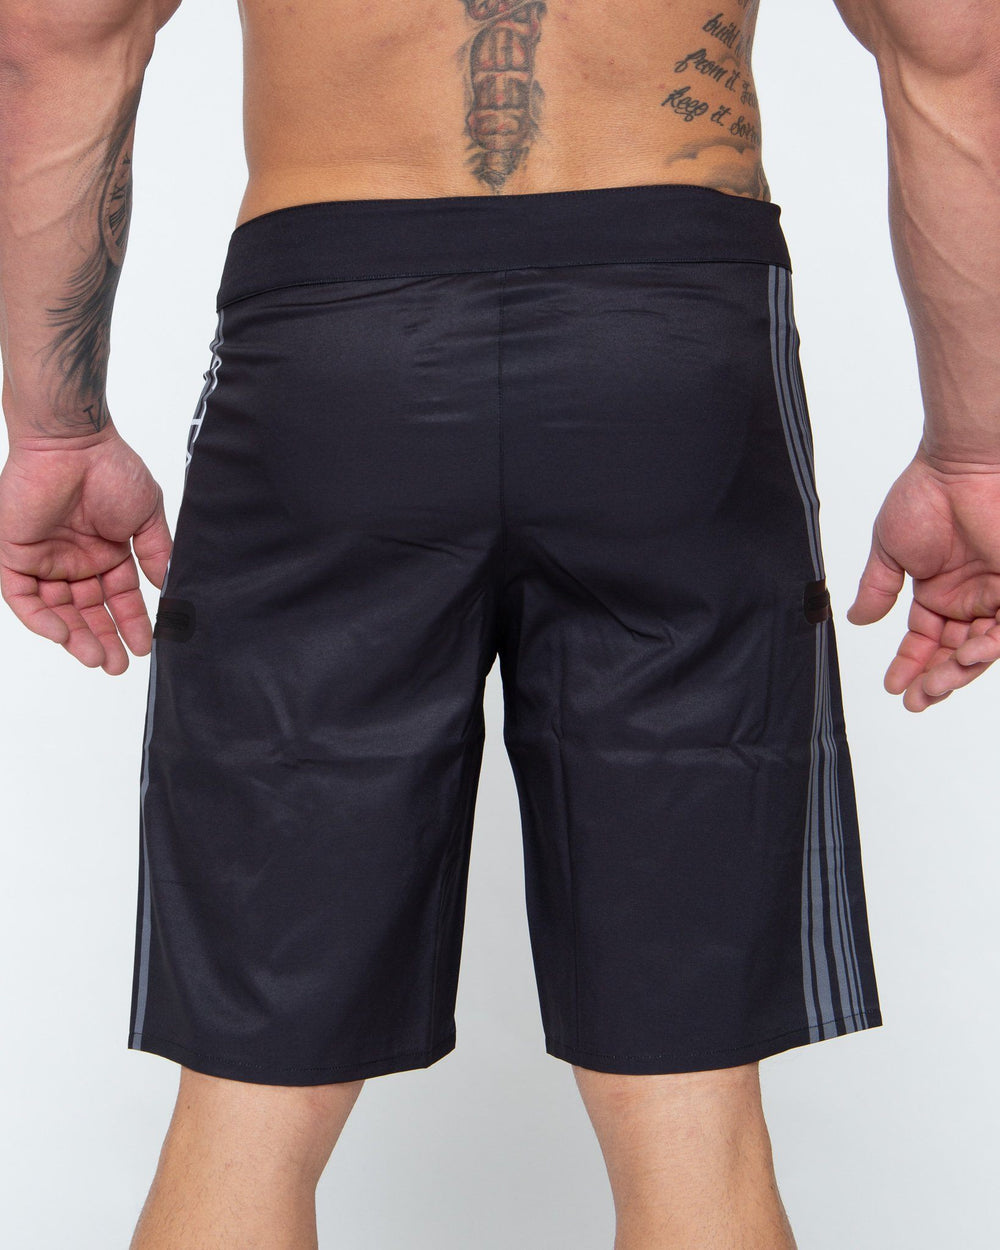 COMP Board Shorts Men's Shorts STAIX